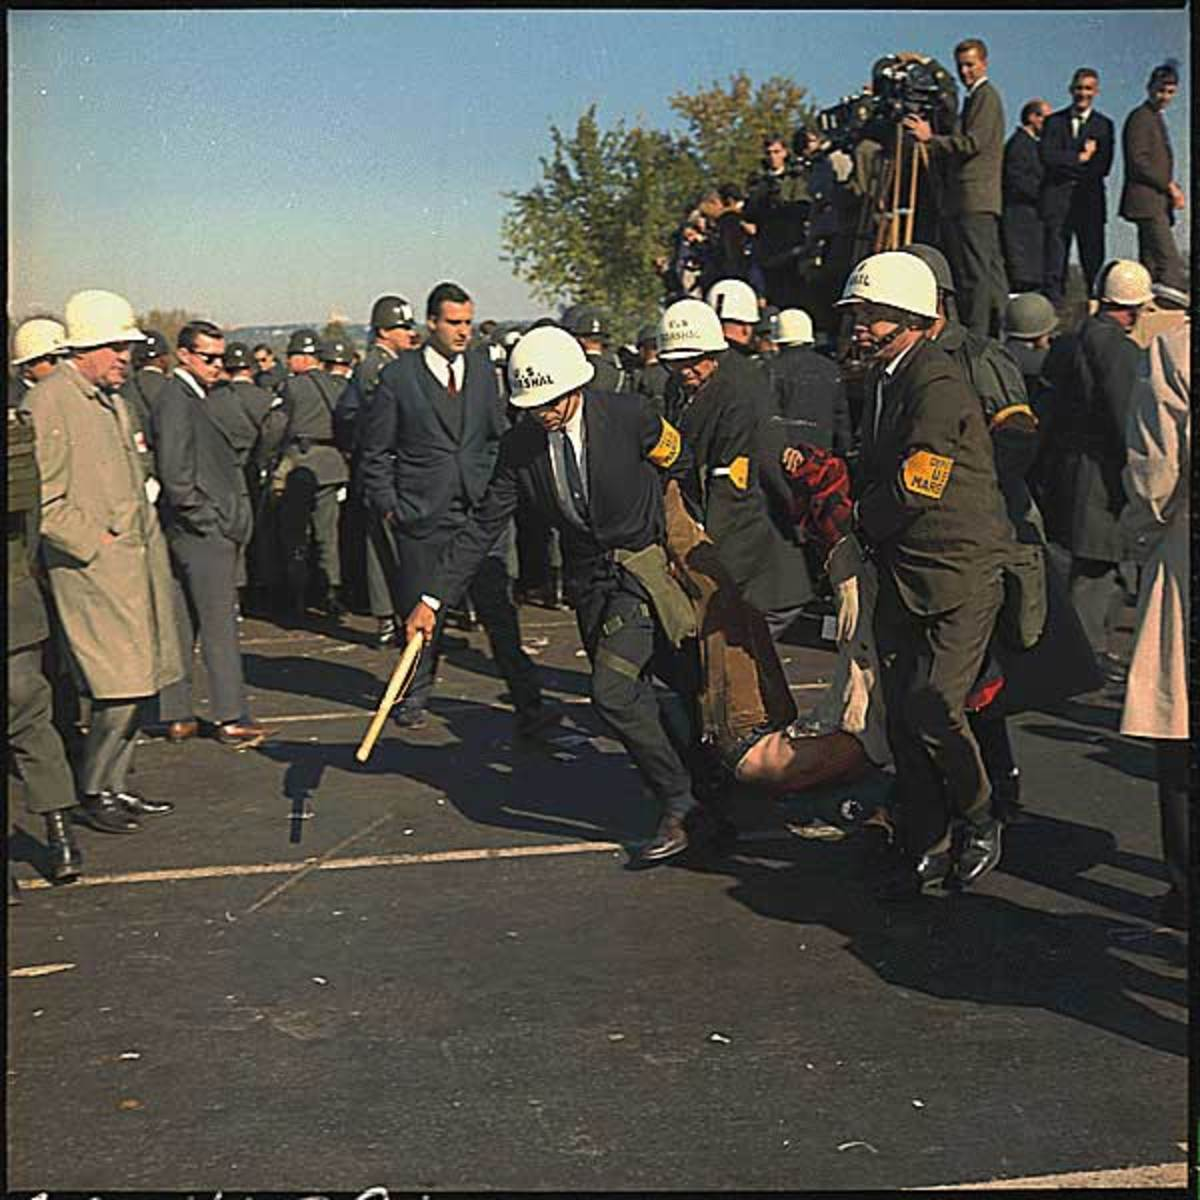 In Washington D.C. An anti-Vietnam demonstration. U.S. Marshals bodily remove one of the protesters during the outbreak of violence at the Pentagon Building, October 1967.